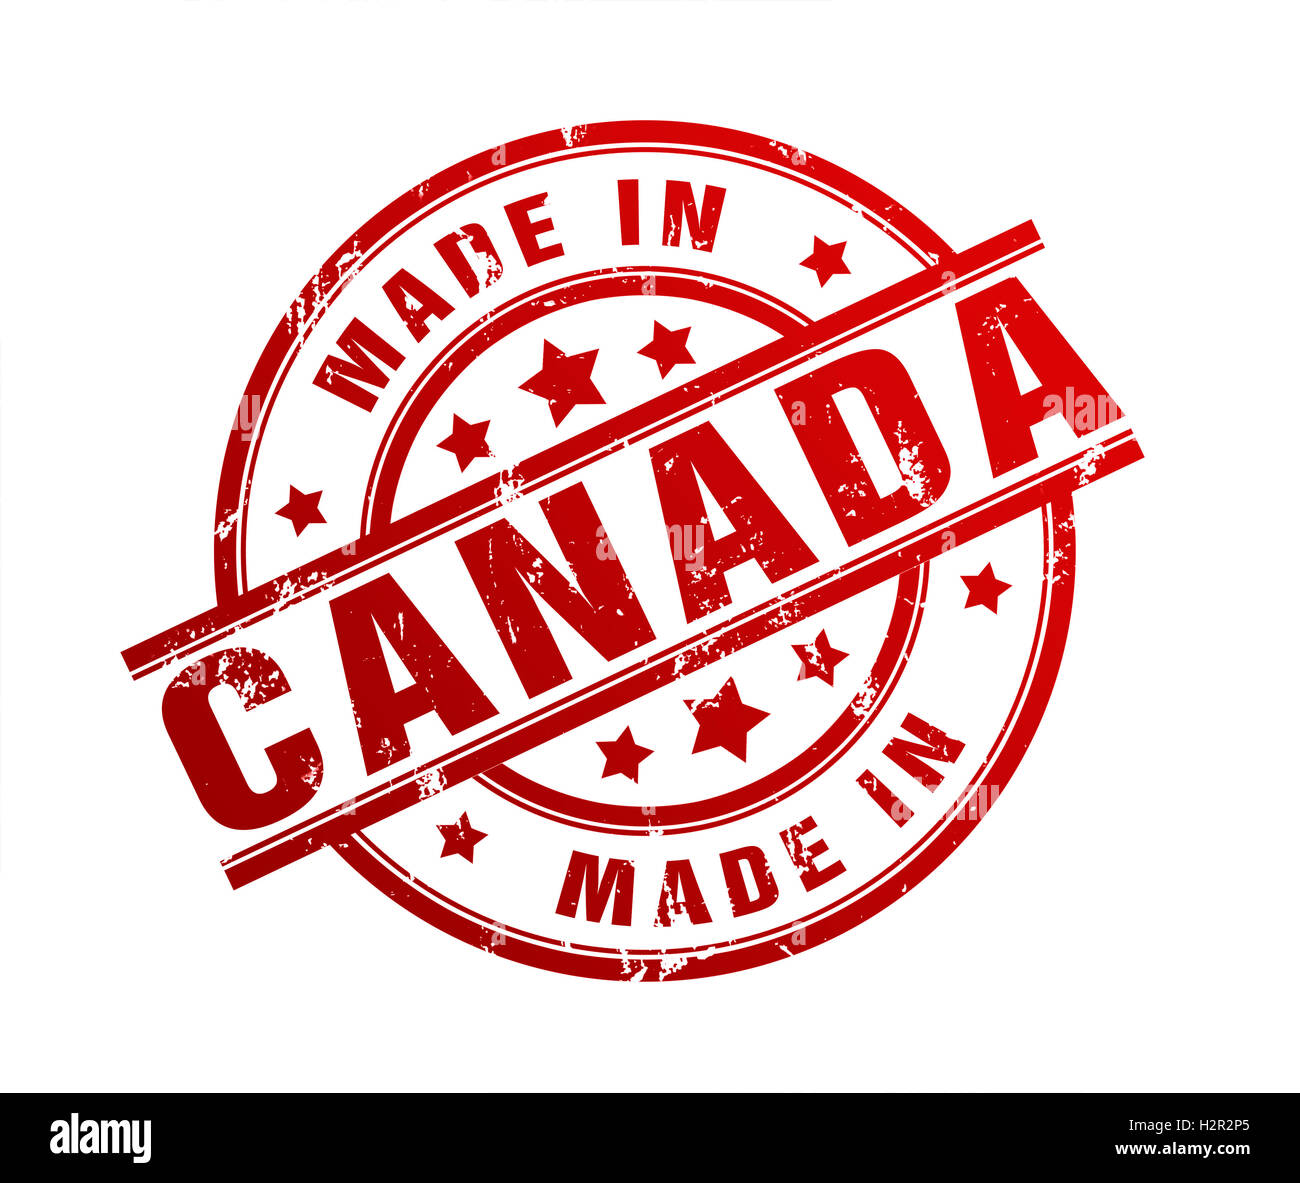 Stamps Of Canada Stock Photos Amp Stamps Of Canada Stock